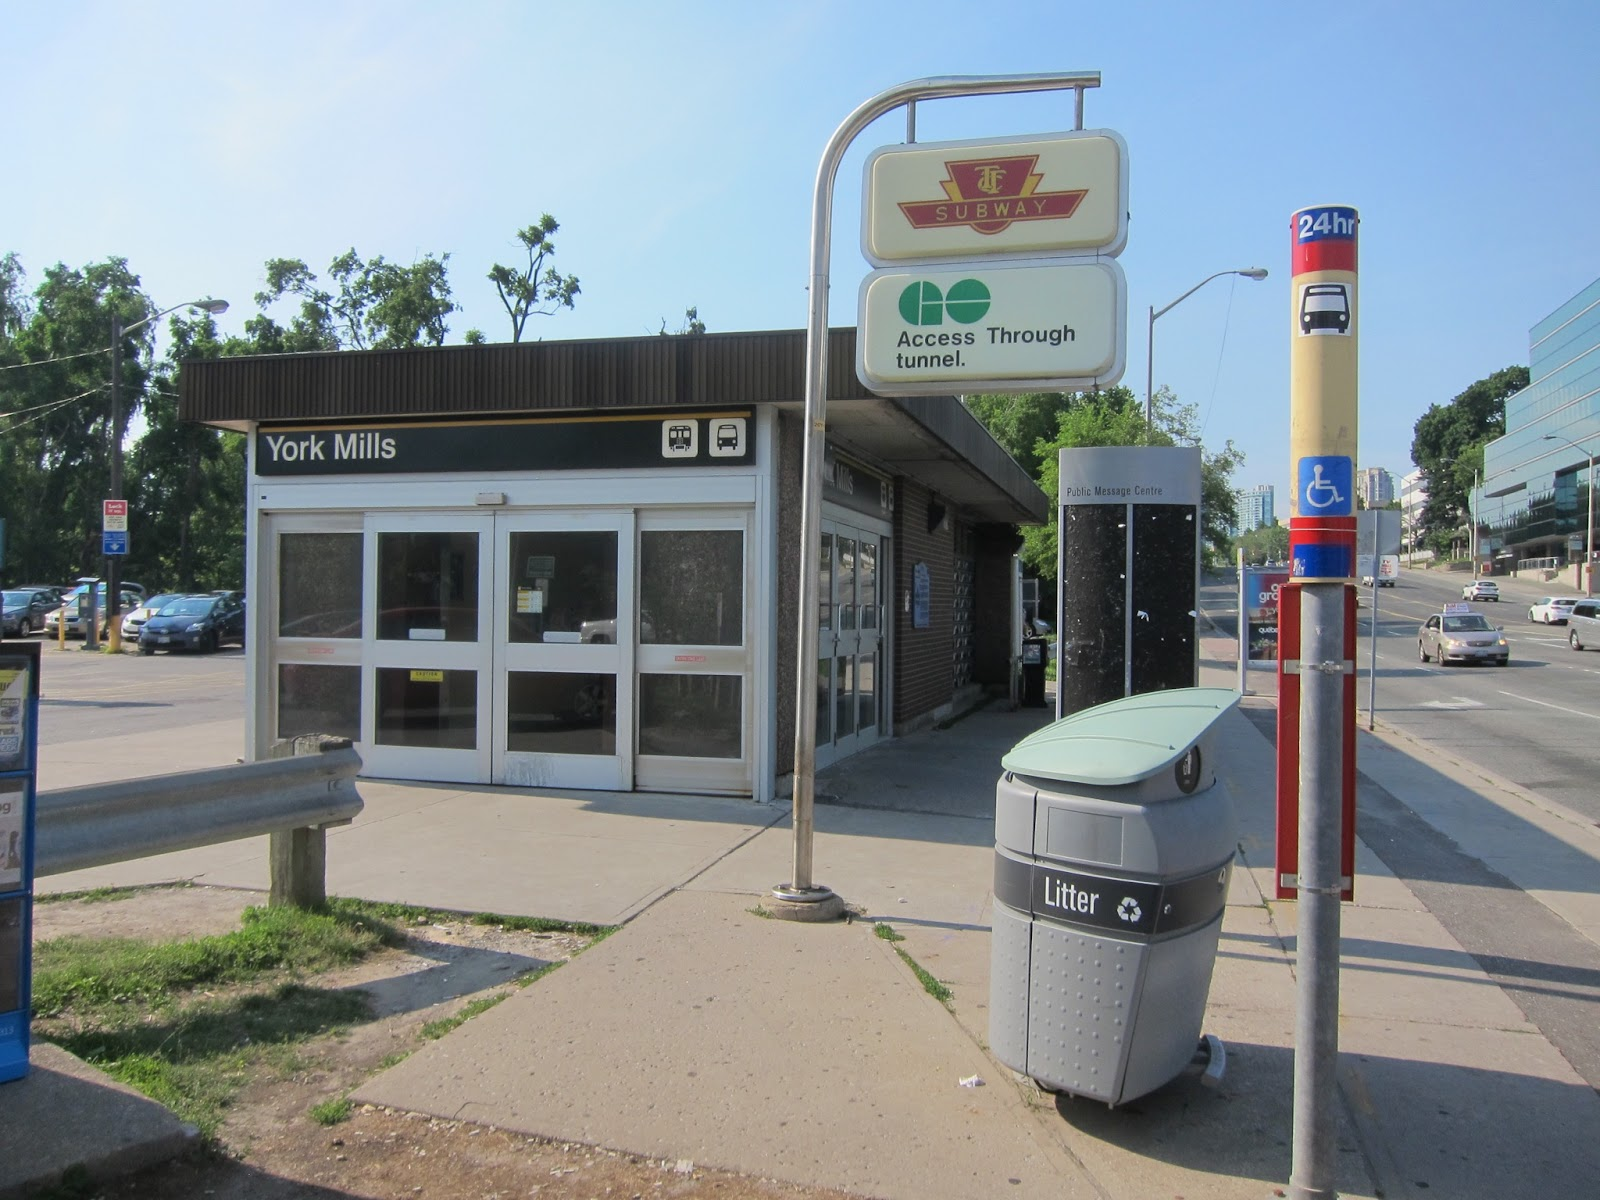 York Mills station entrance